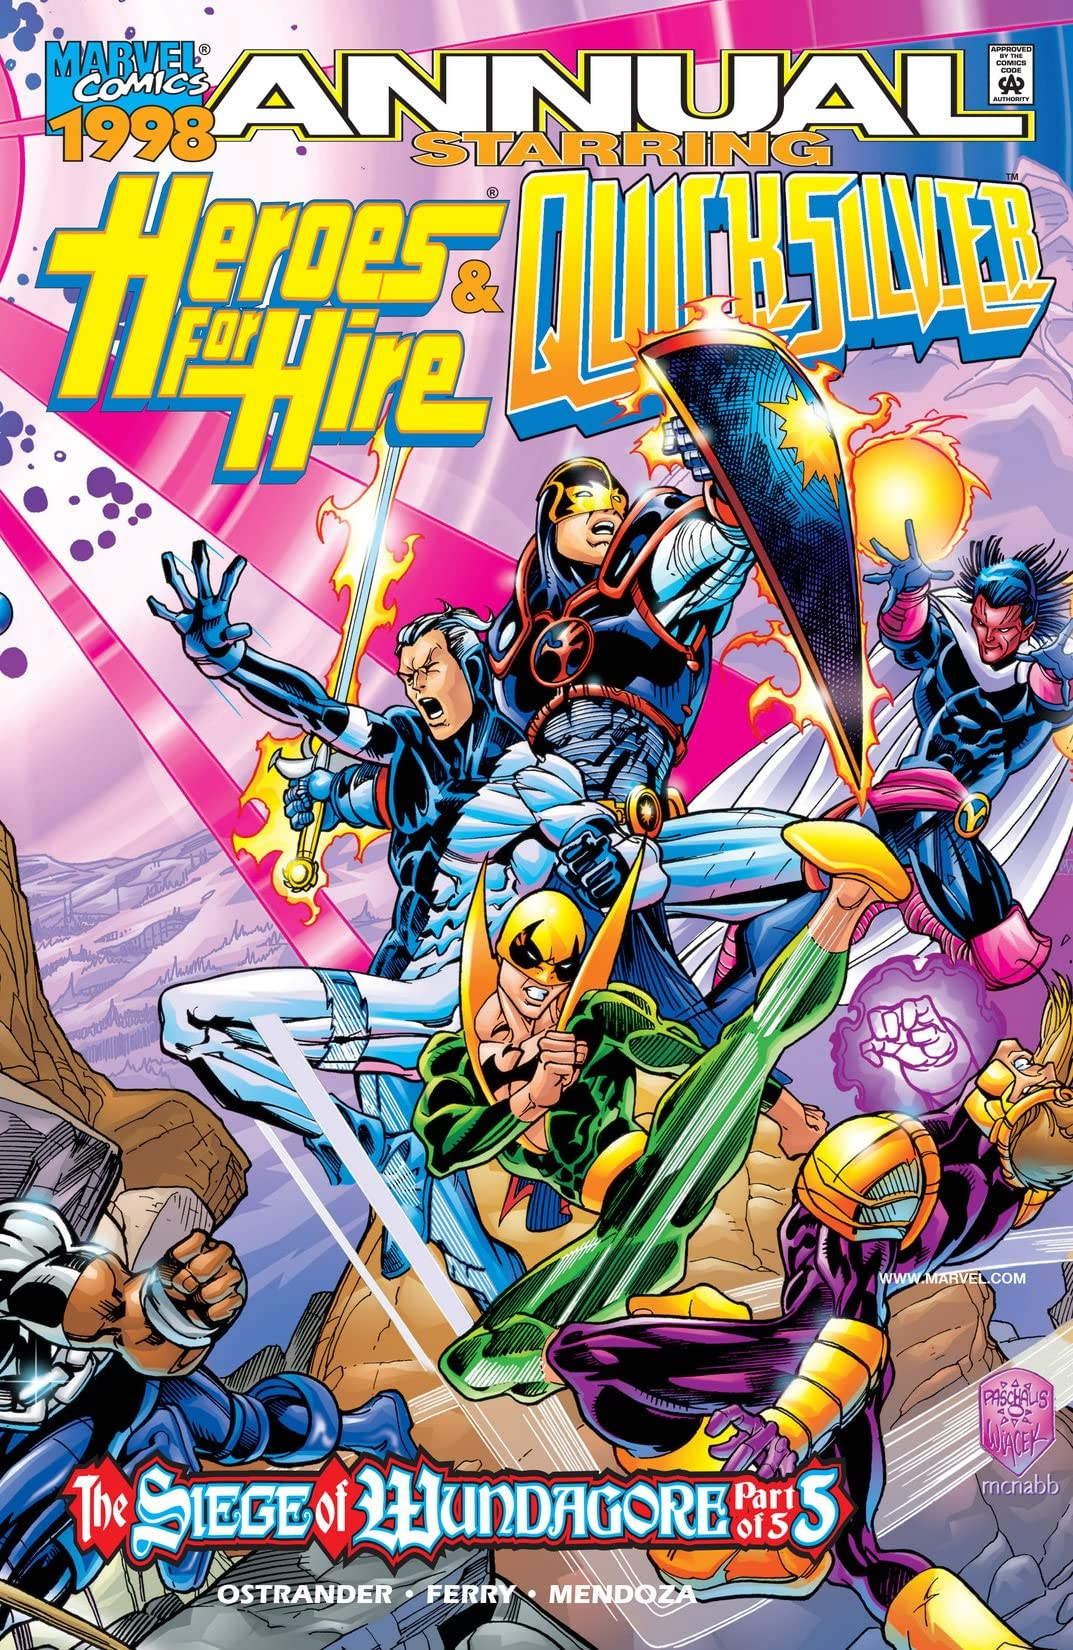 Heroes For Hire/Quicksilver Annual '98 #1